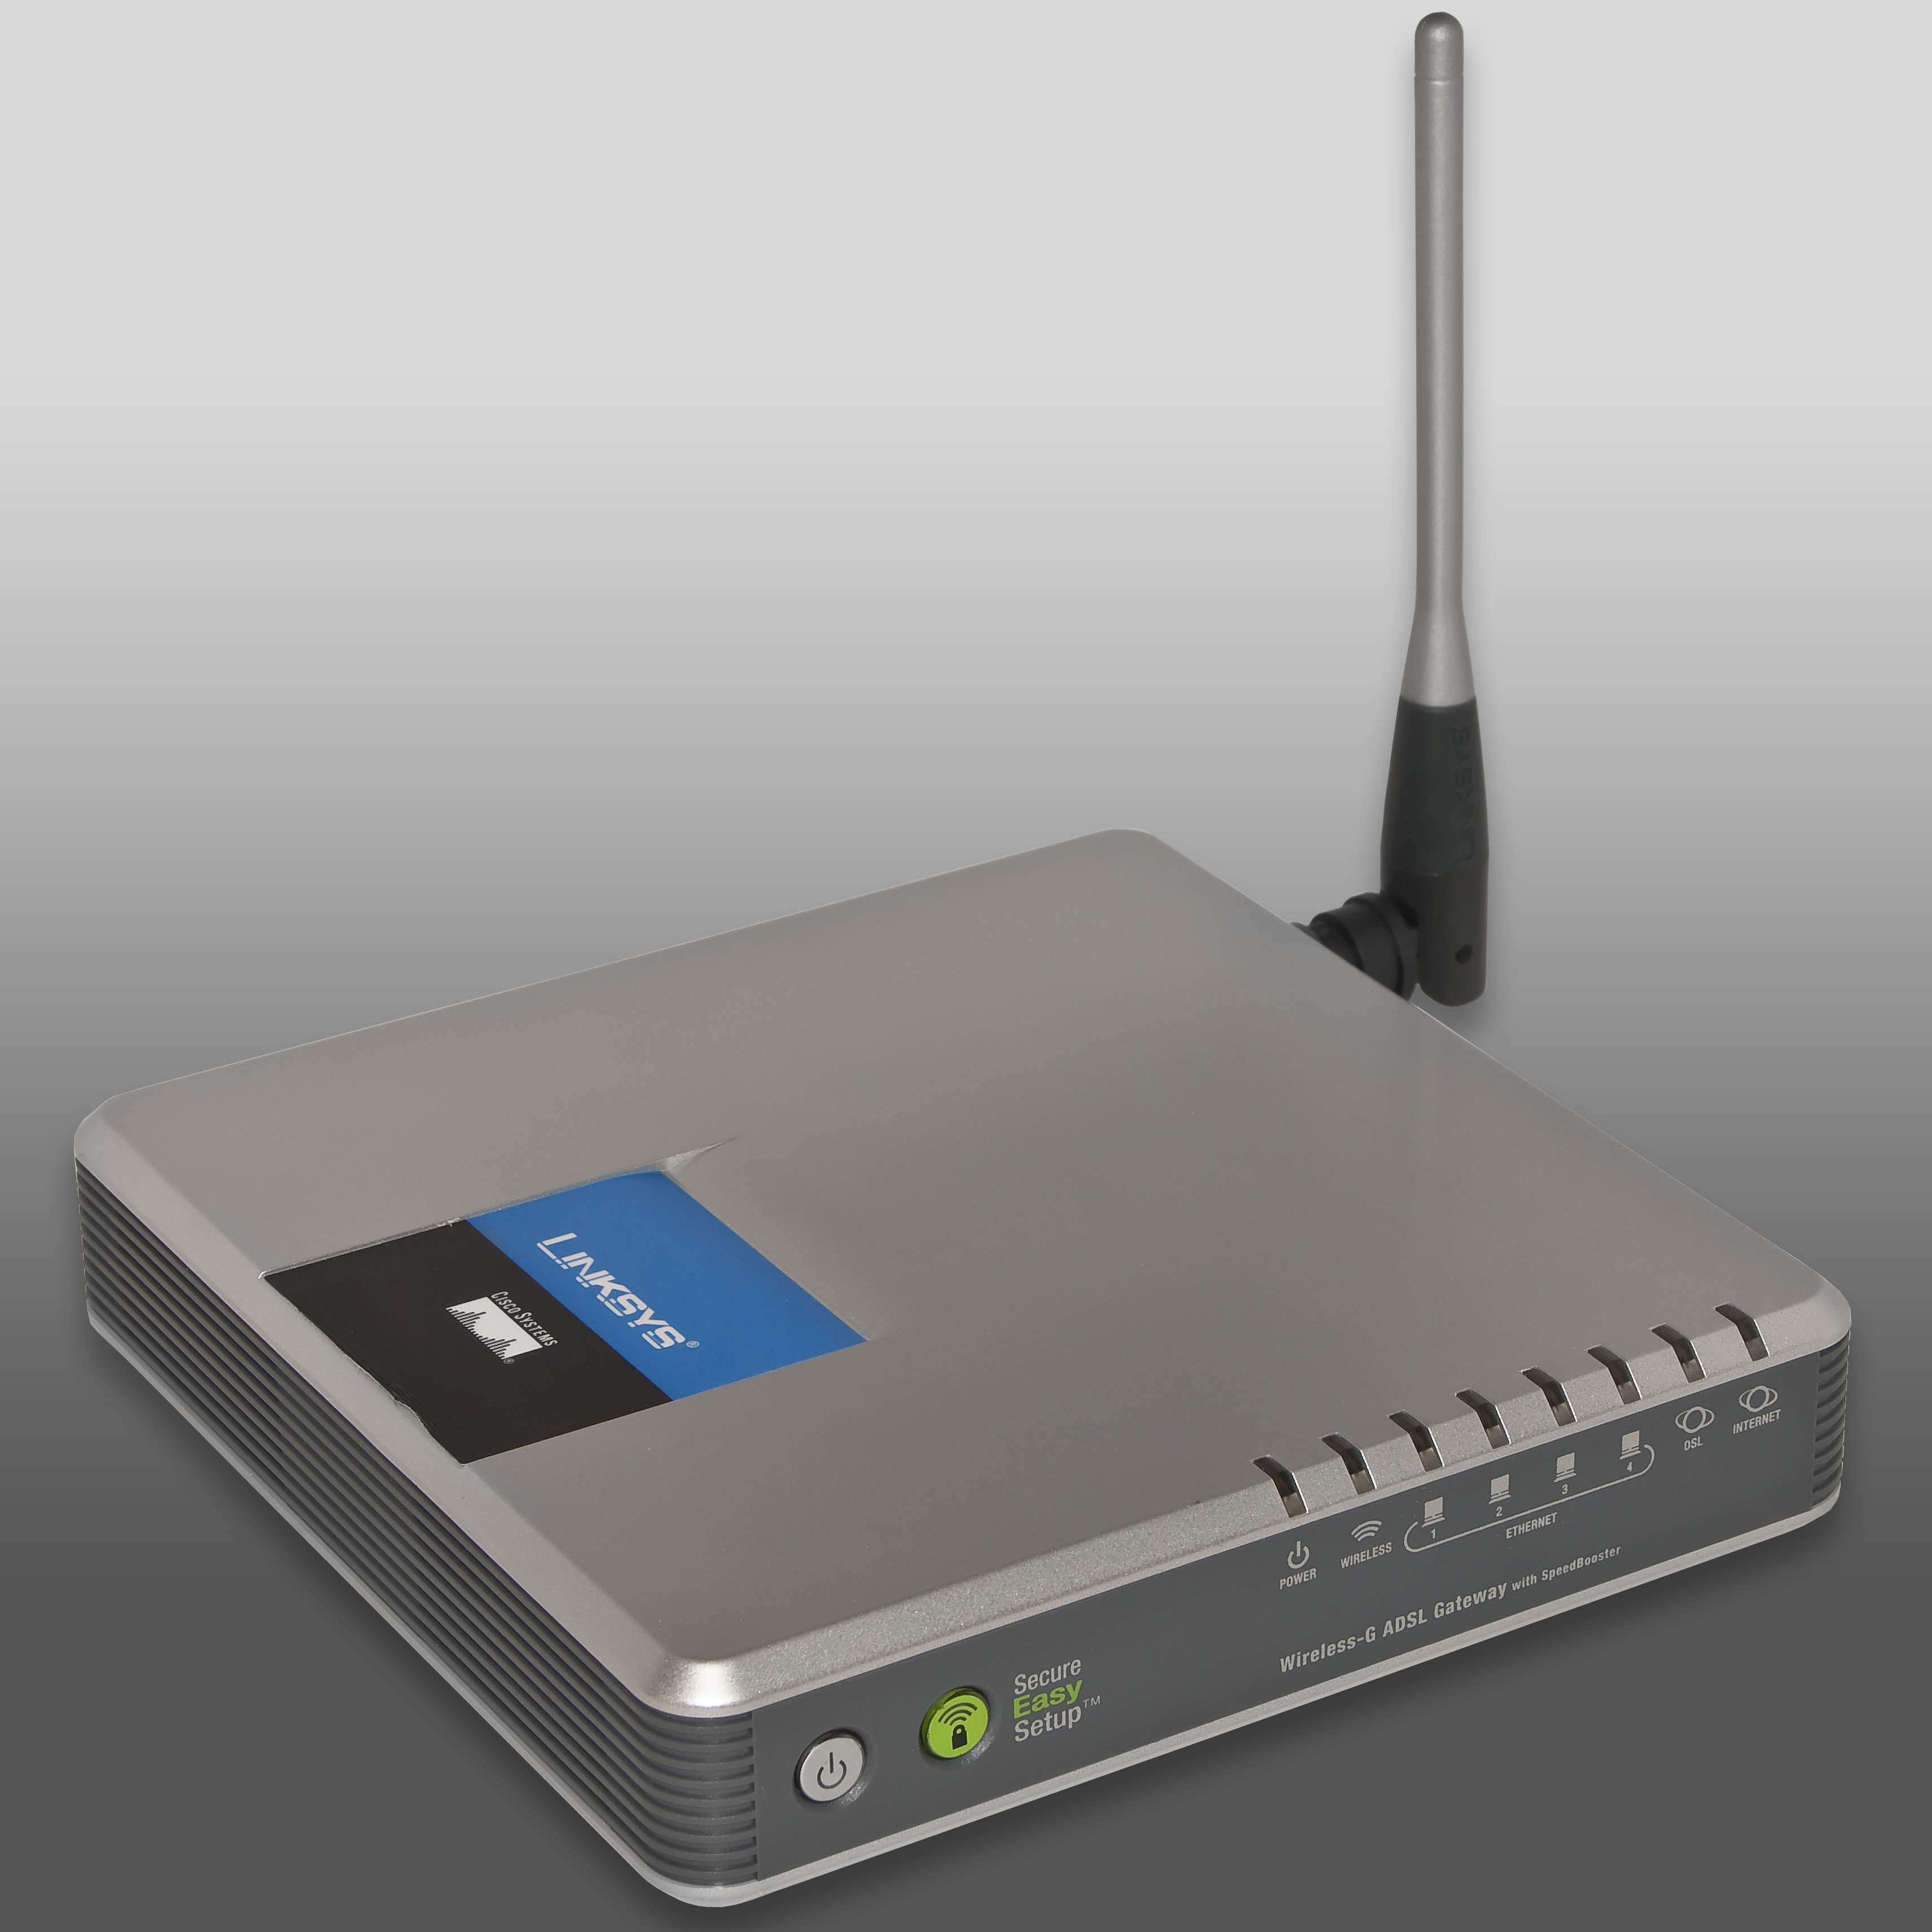 File:ADSL router with Wi-Fi (802.11 b-g).jpg